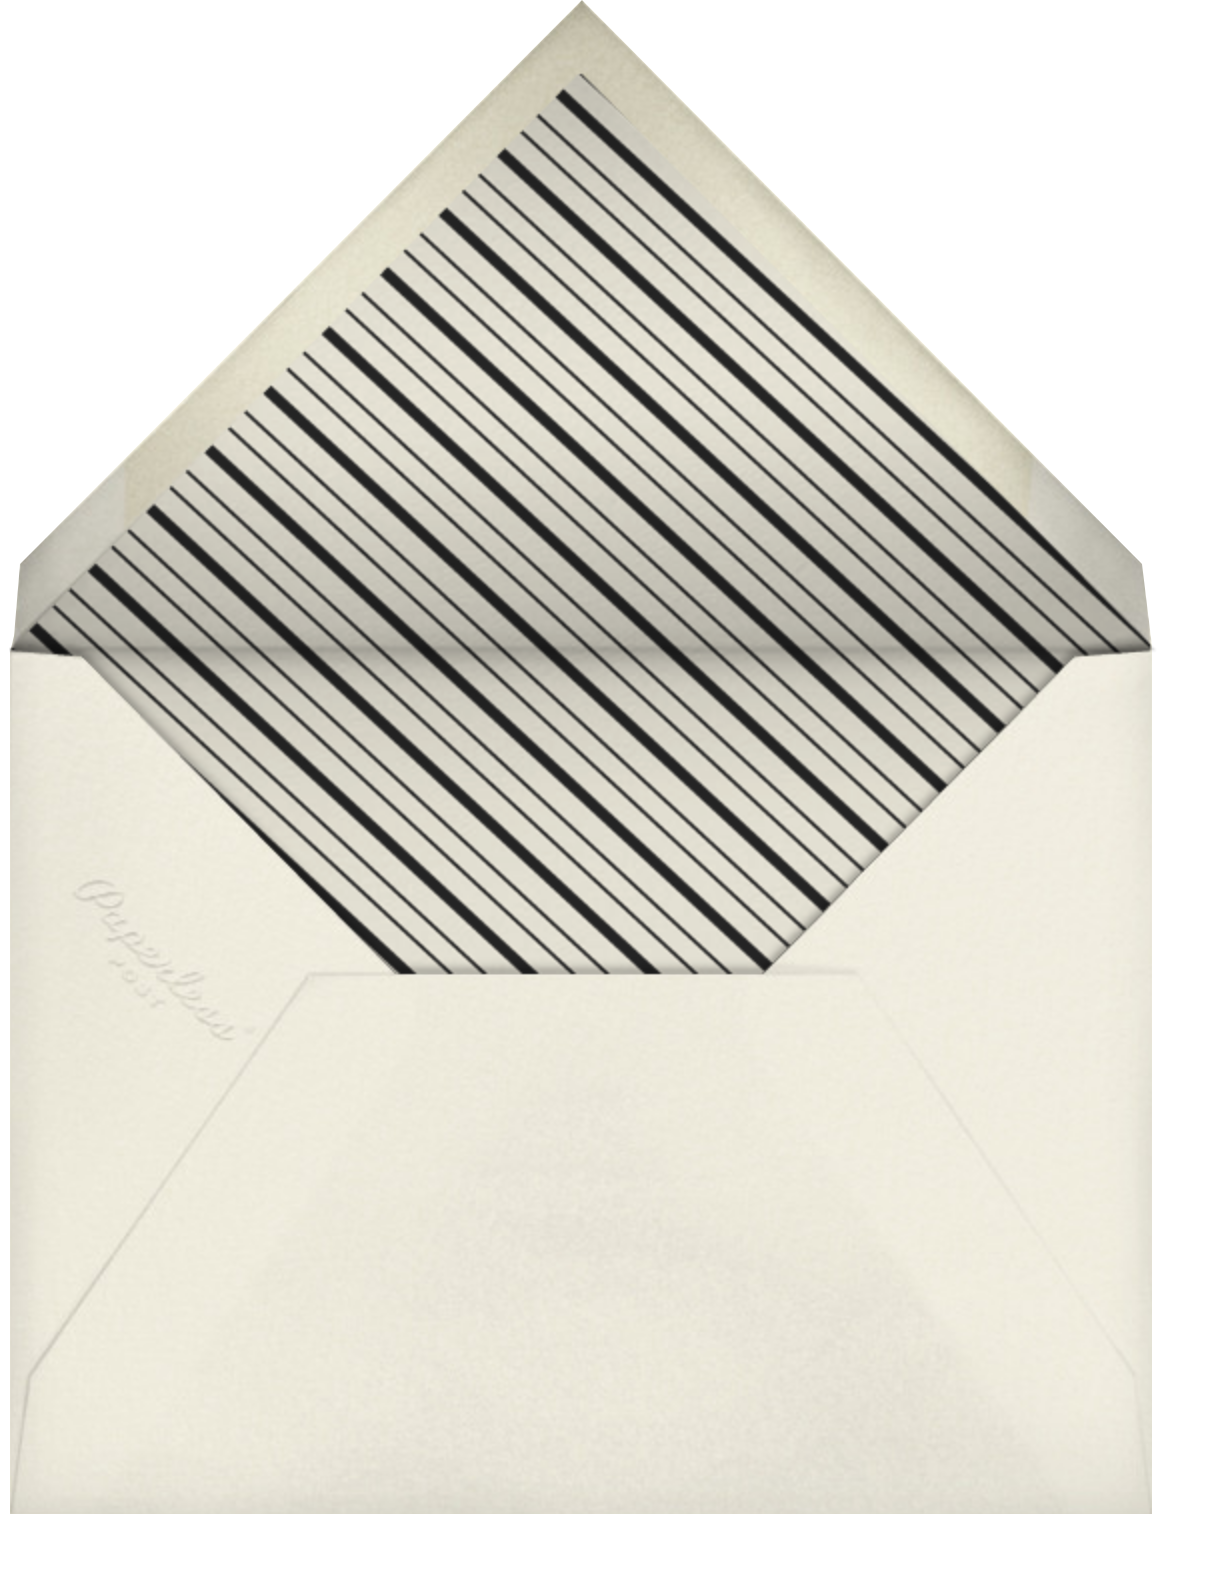 The Big Oyster - Paperless Post - Envelope